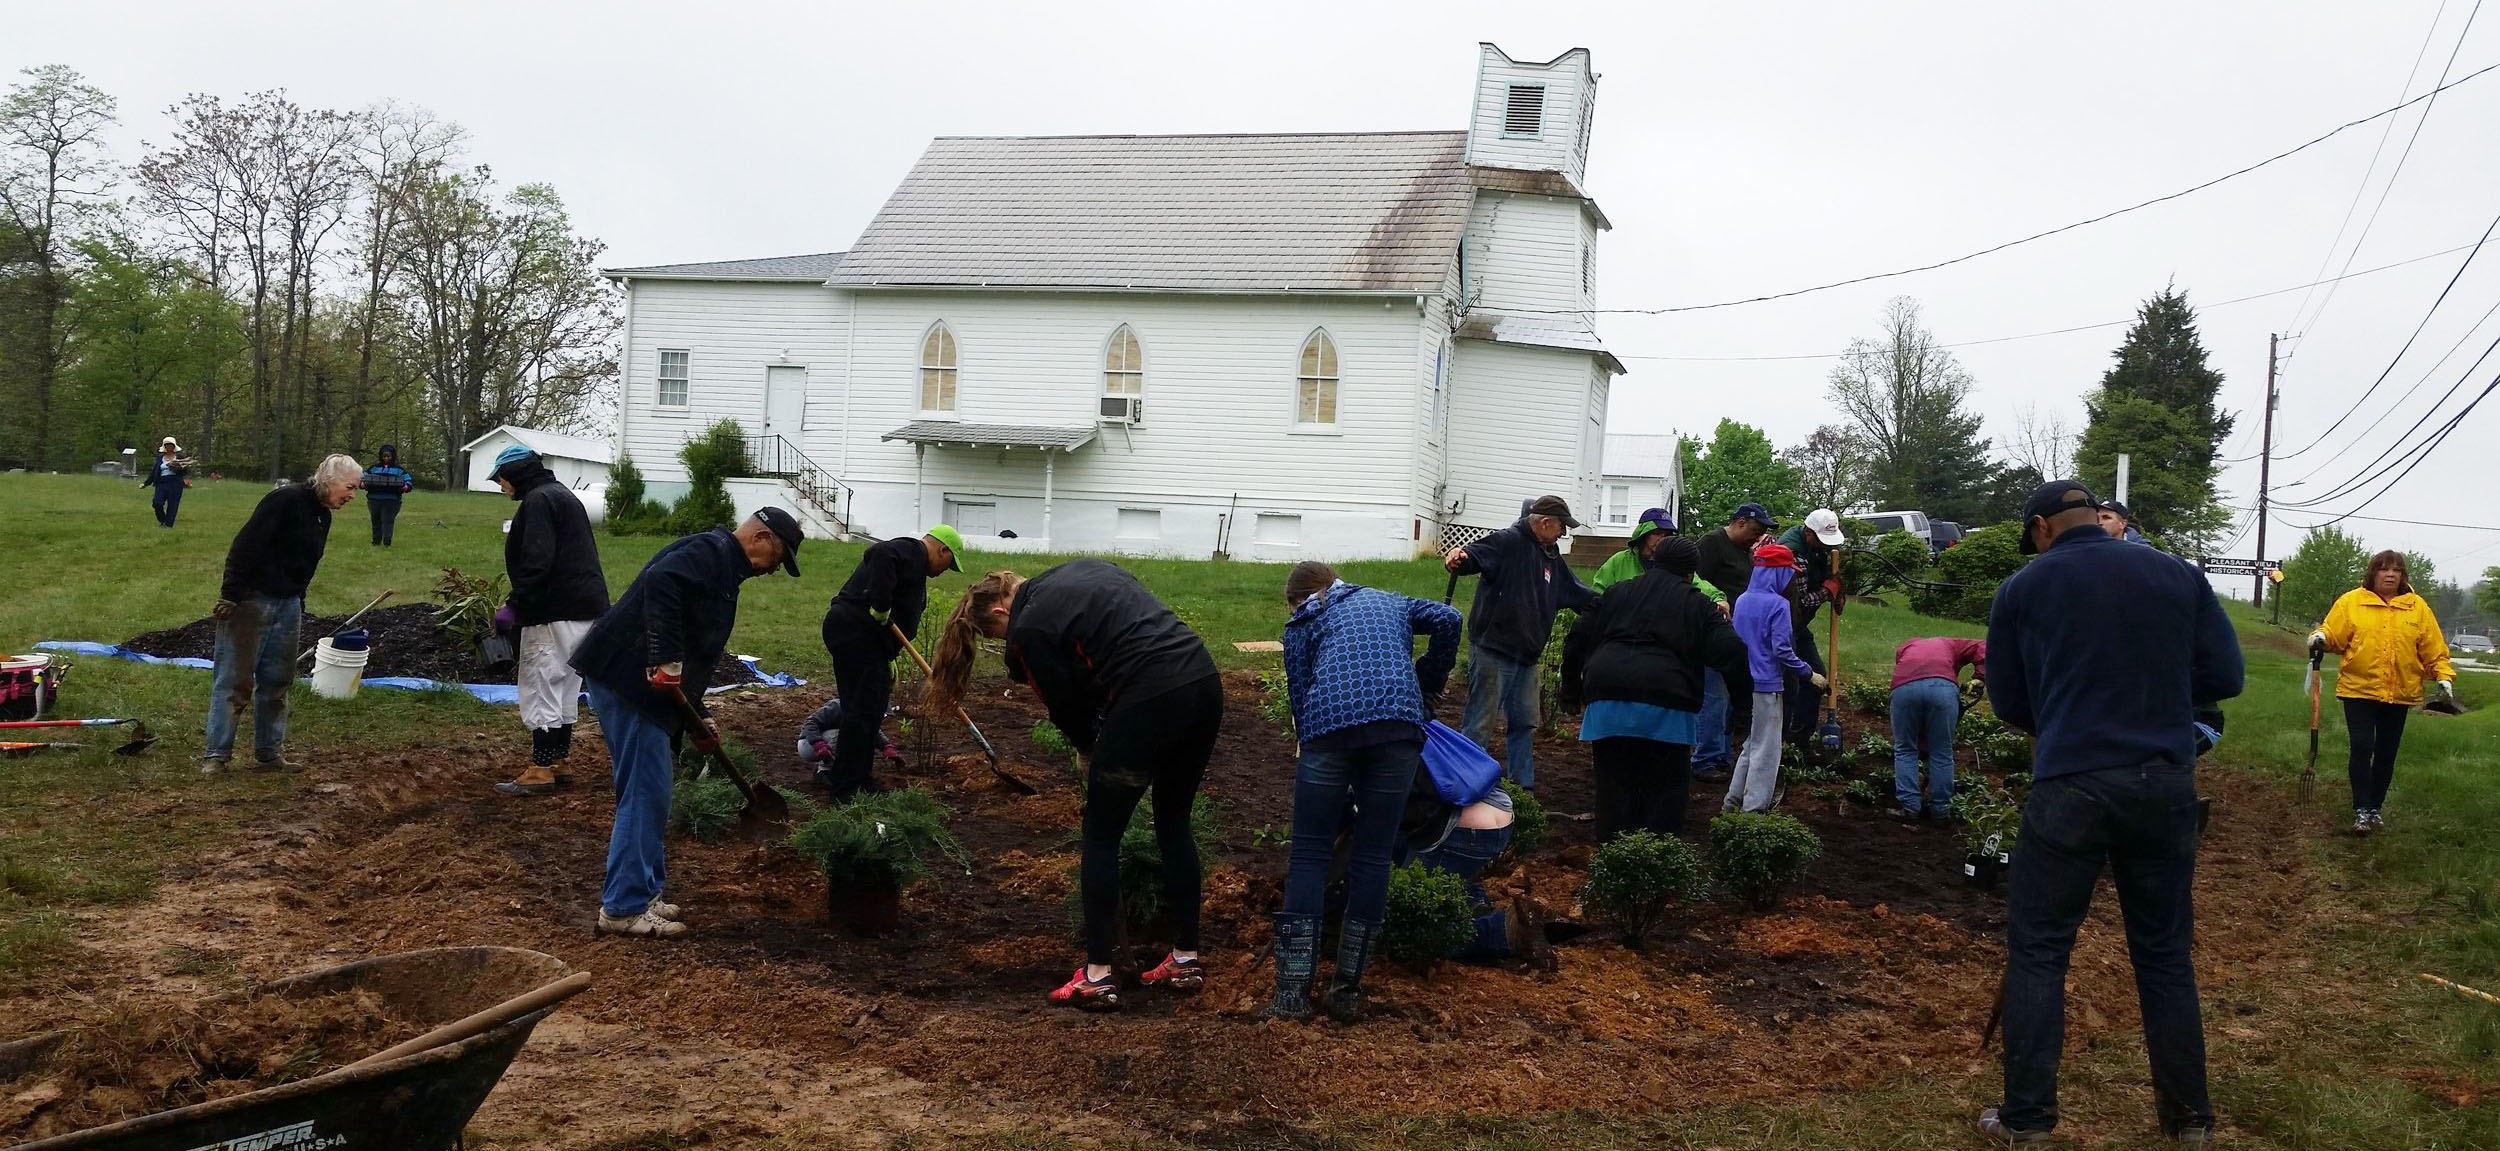 Plant roots meet historic roots at Pleasant View Historic Site